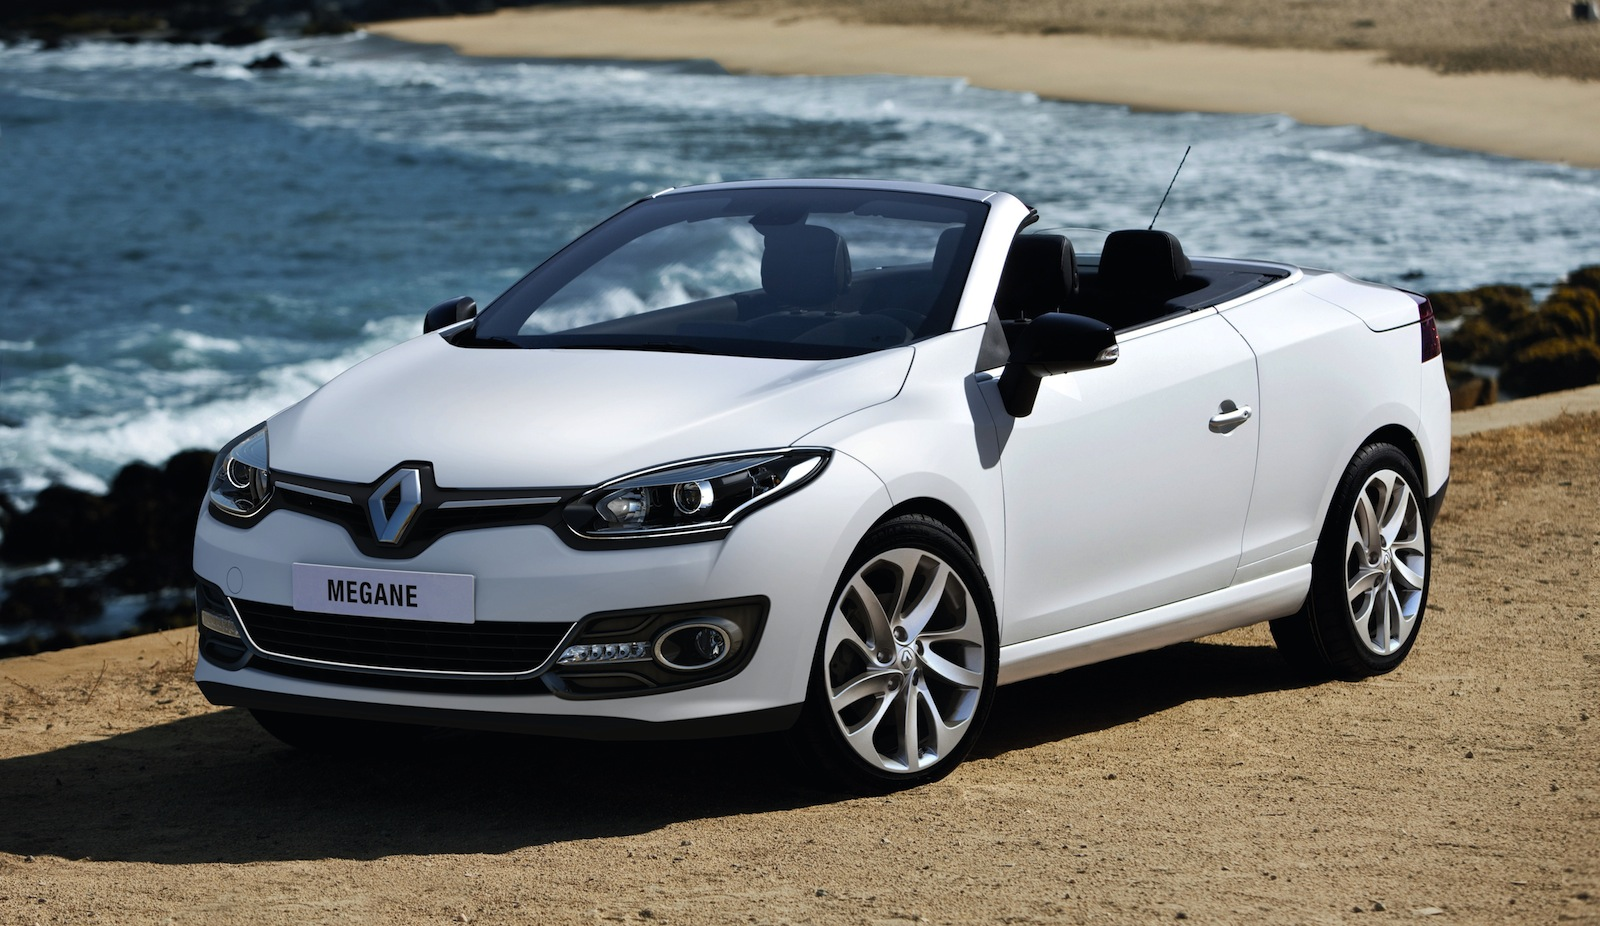 2014 renault megane coupe cabriolet price 2017 2018 best cars reviews. Black Bedroom Furniture Sets. Home Design Ideas